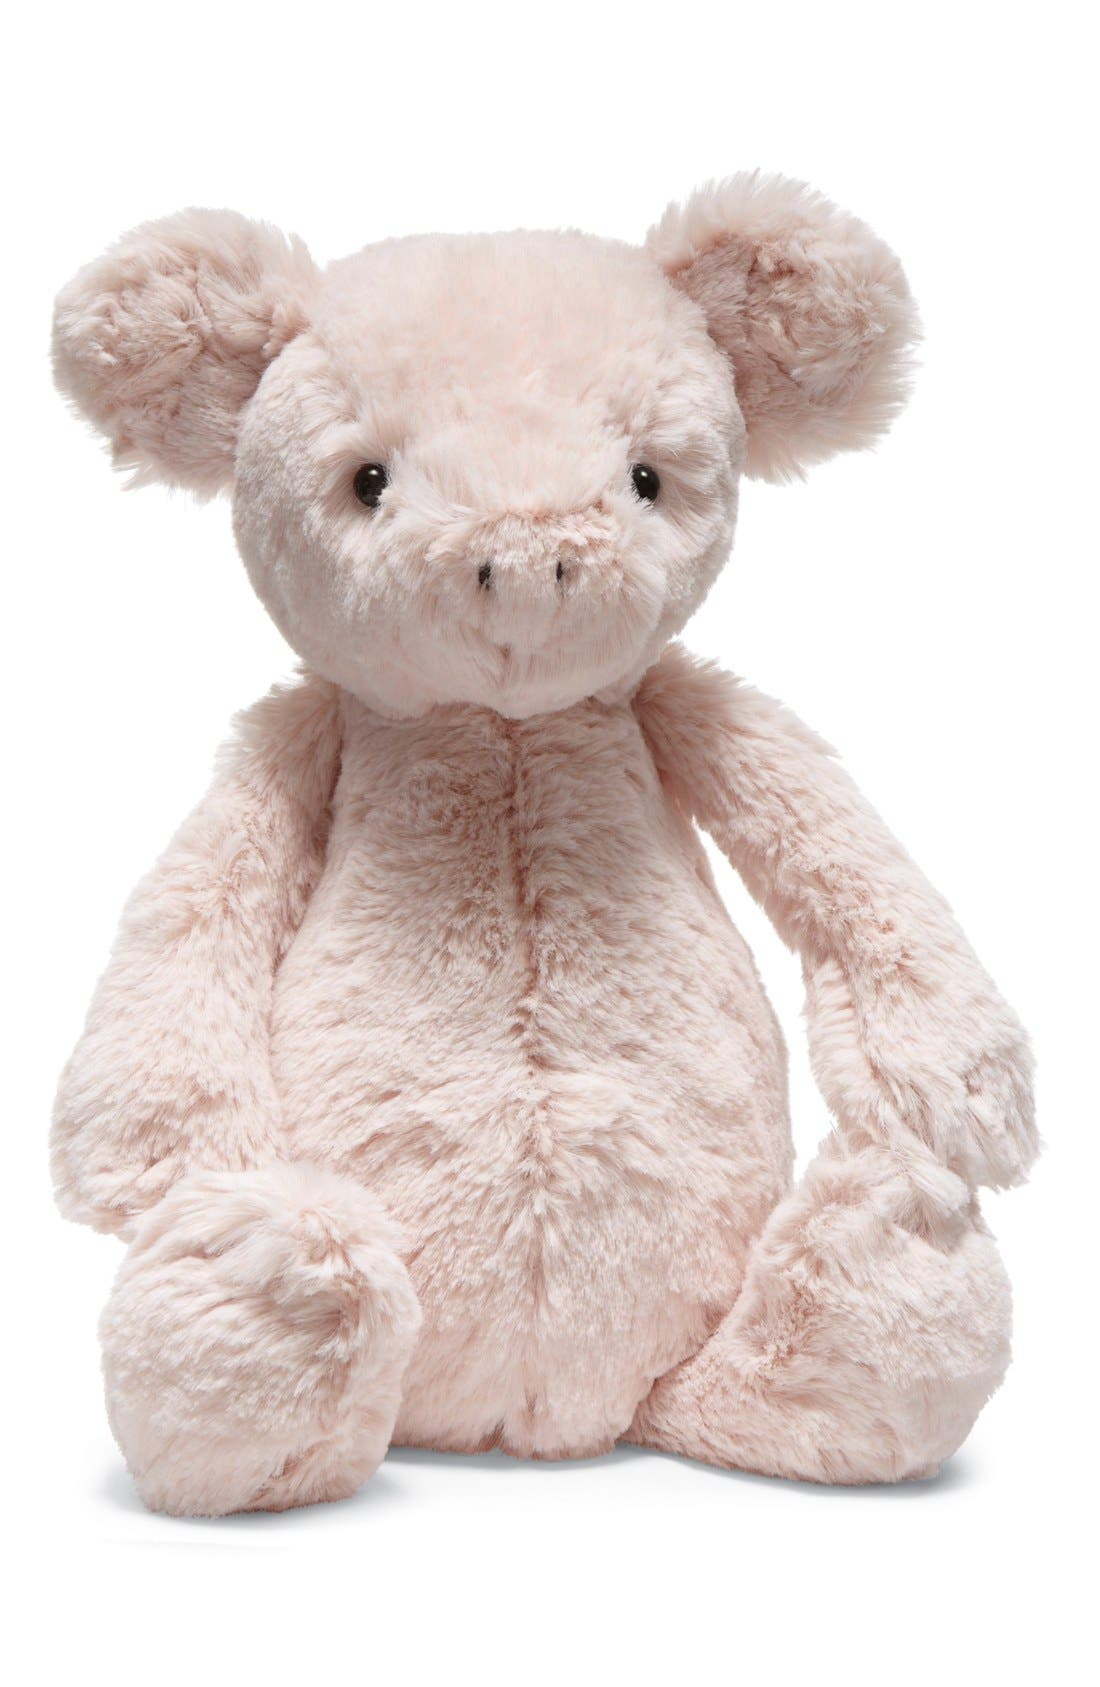 Jellycat 'Bashful Piggy' Stuffed Animal